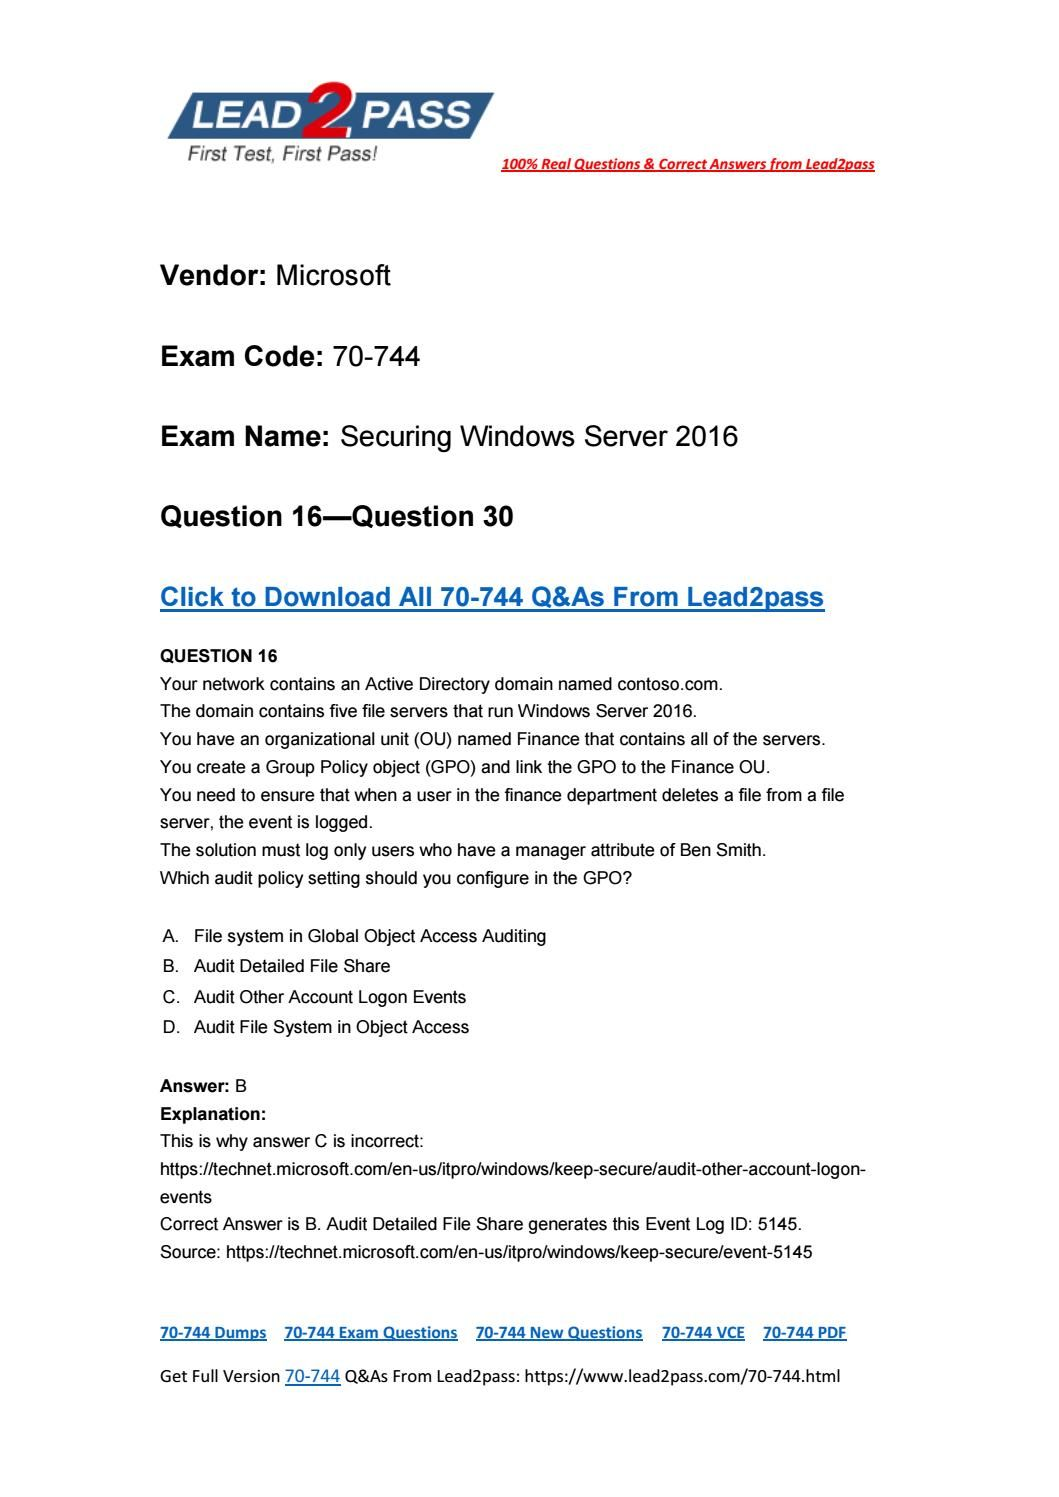 Free lead2pass 70 744 pdf dumps with the latest update exam free lead2pass 70 744 pdf dumps with the latest update exam questions 16 1betcityfo Gallery